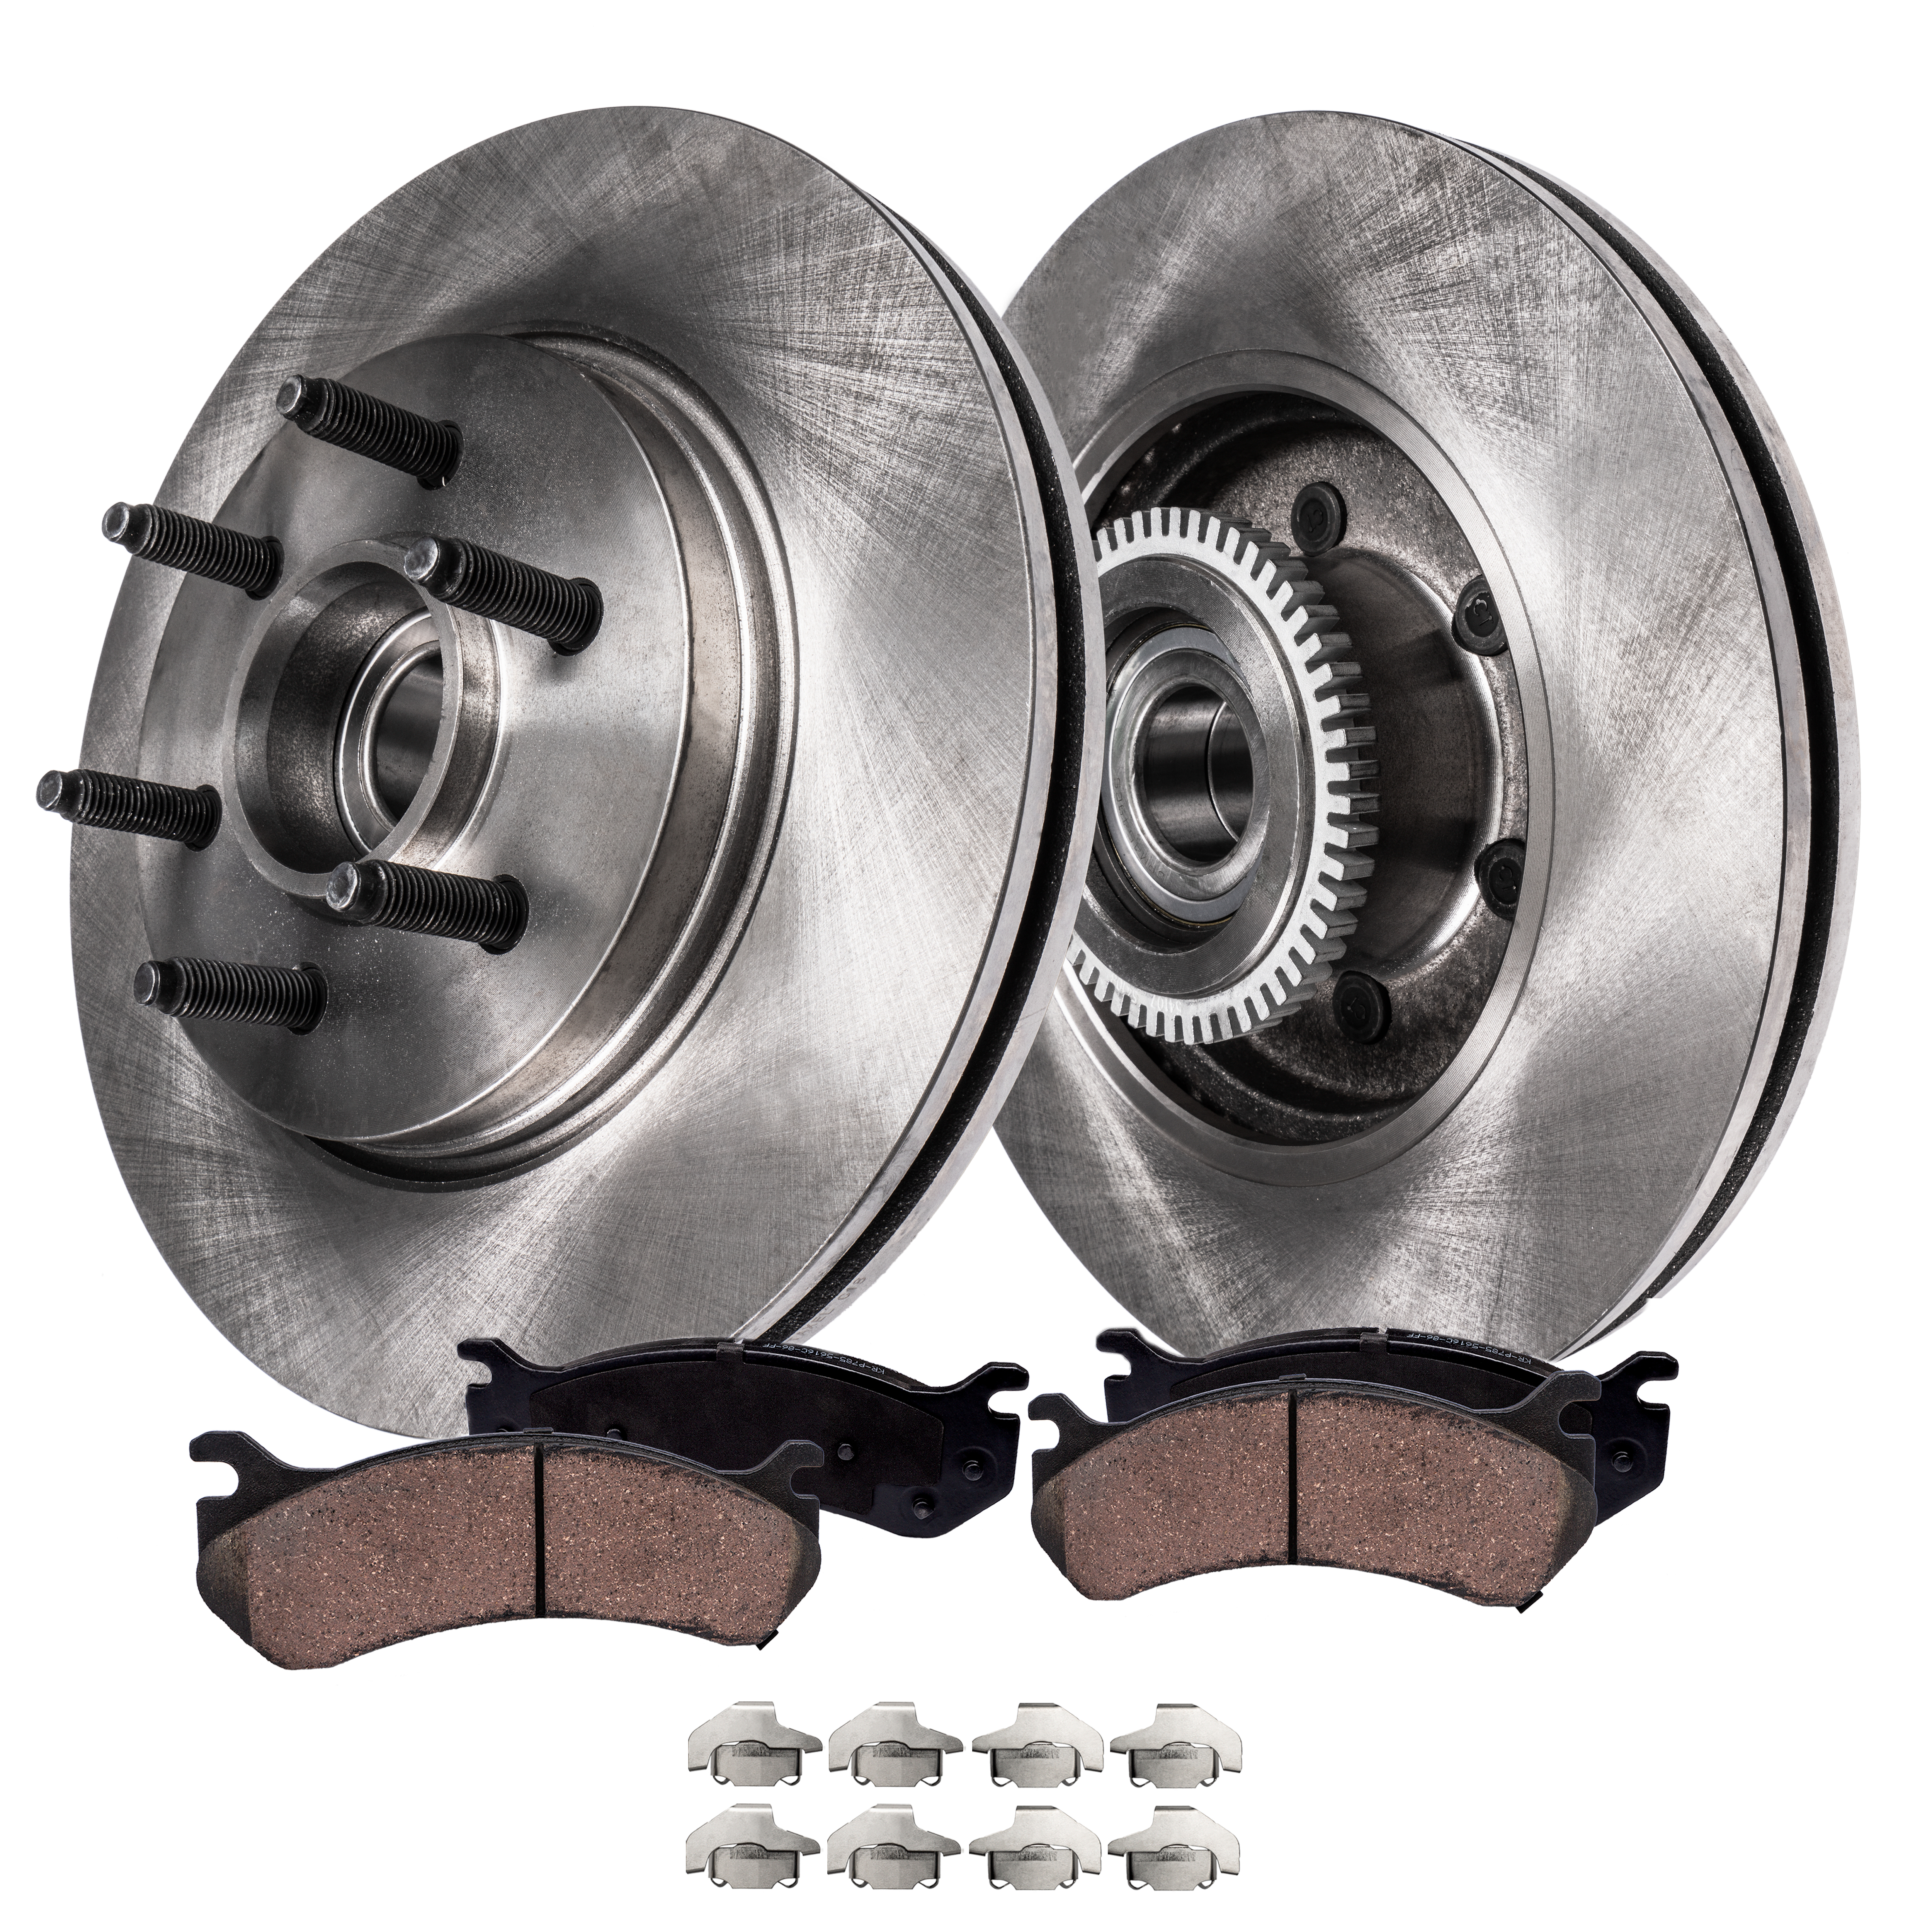 - 2WD 6 Lug Only All 2006-2008 Lincoln Mark LT Detroit Axle Front and Rear Drilled and Slotted Disc Brake Kit Rotors for 2004 2005 2006 2007 2008 Ford F-150 - 4